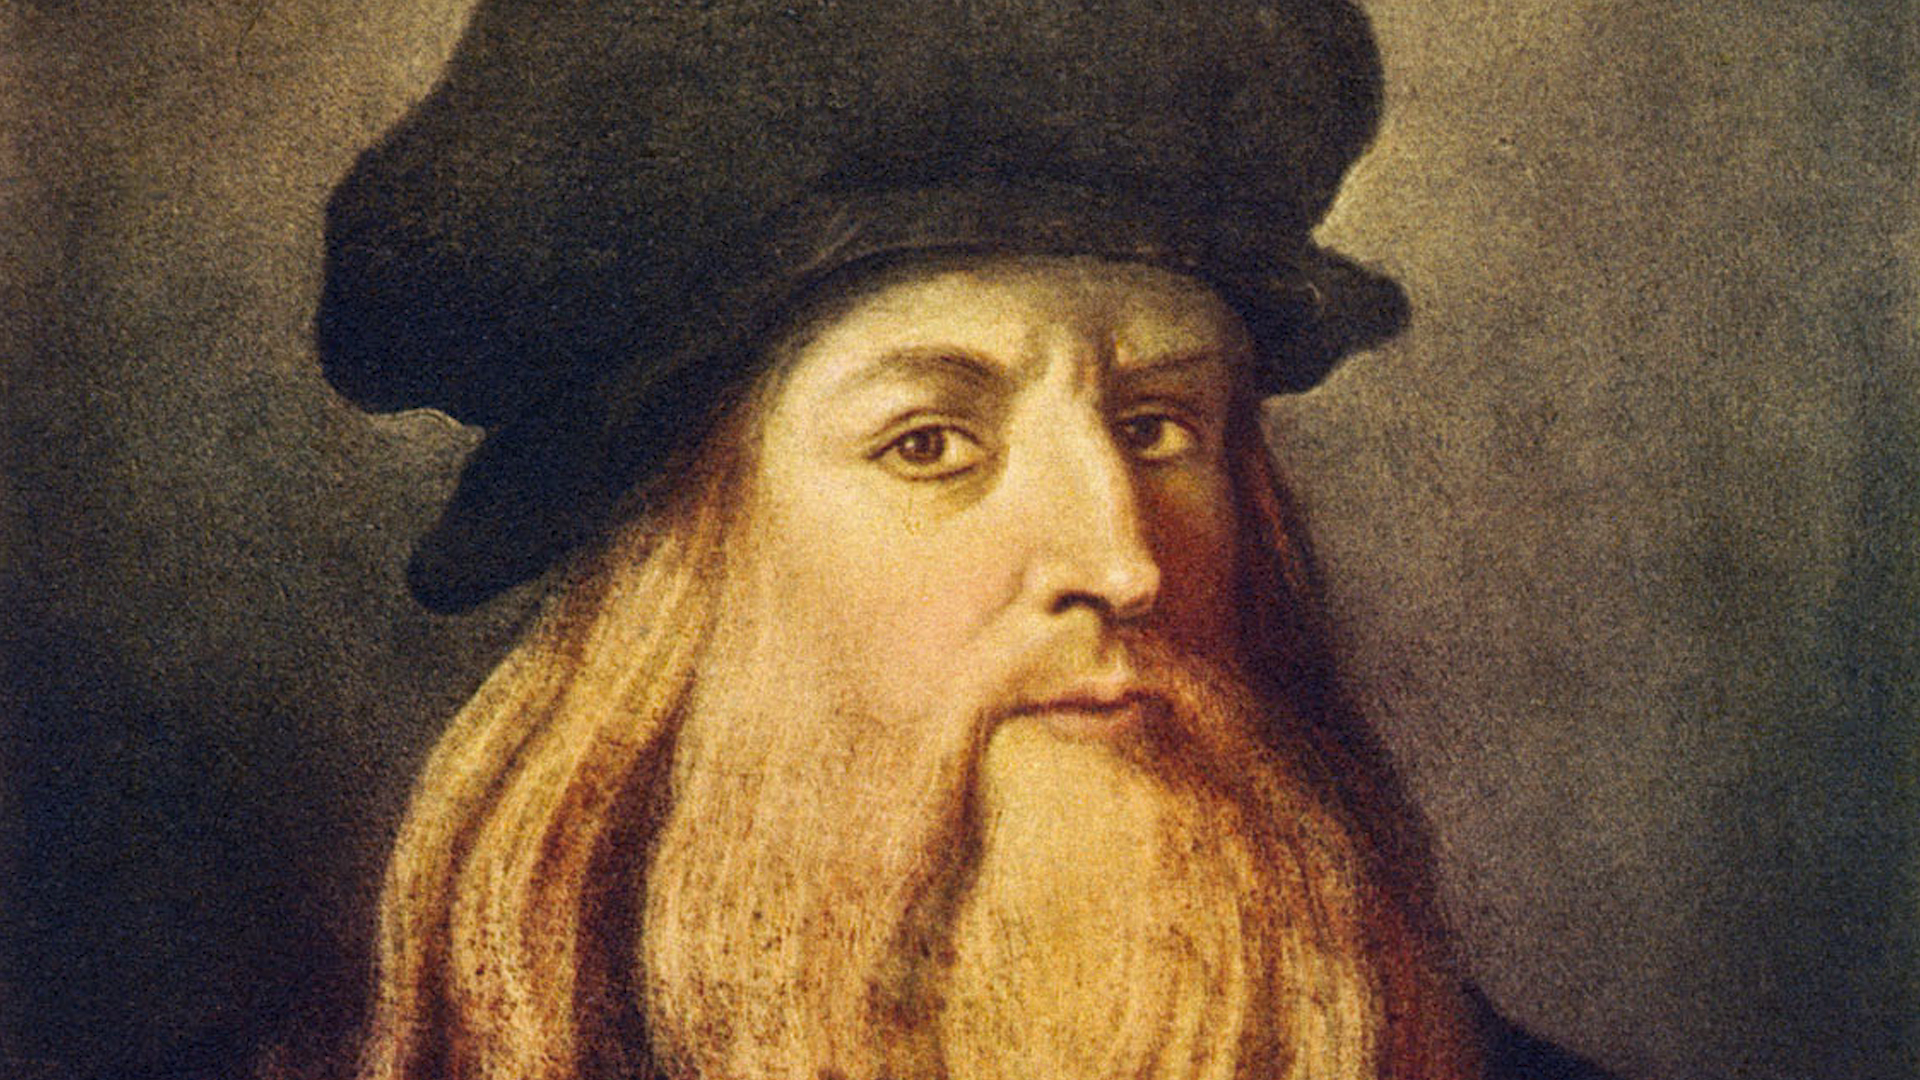 the life and career of leonardo da vinci A painter, a sculptor, an architect and an engineer, leonardo da vinci's numerous skills have earned him the title of renaissance master da vinci's fascination with science and his in-depth study of human anatomy aided him in mastering the realist art form.